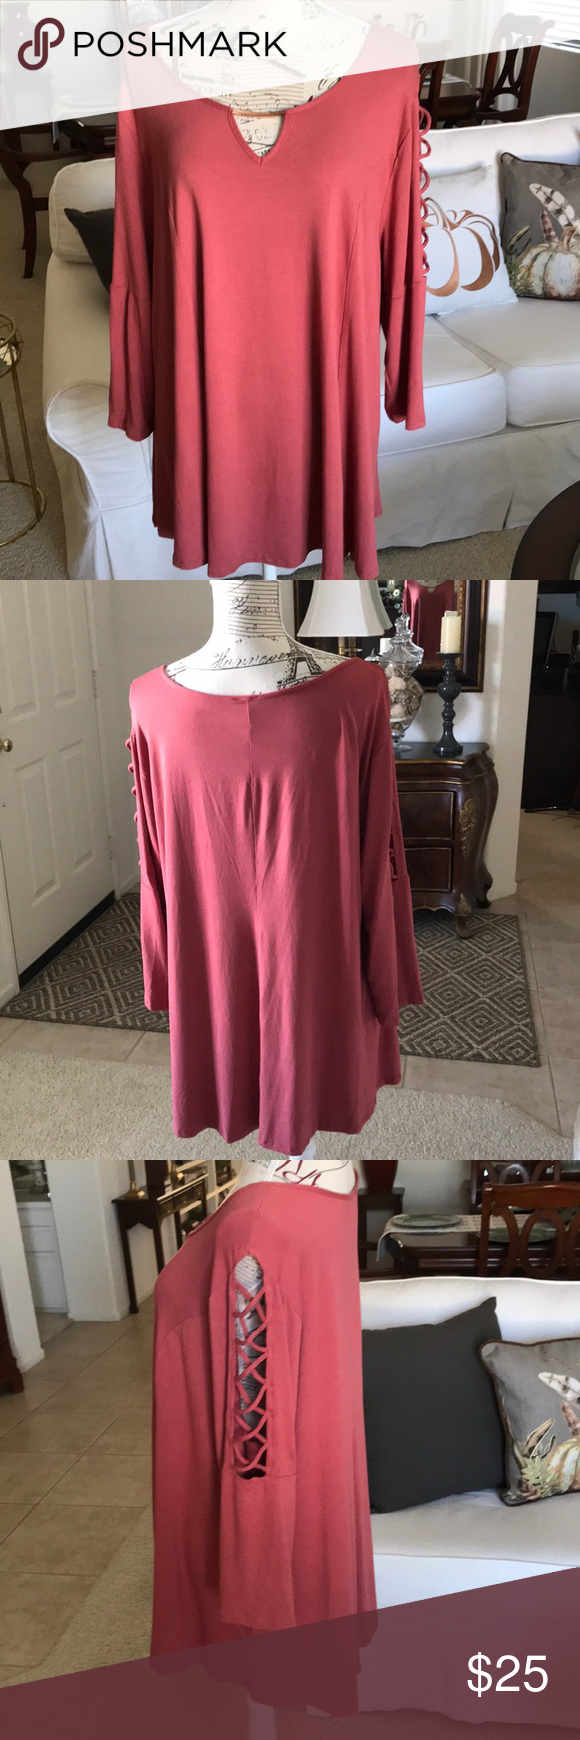 The picture perfect top for fall You will love this top and wear it often. It's that great longer figure flattering length we all love. It's a bea…